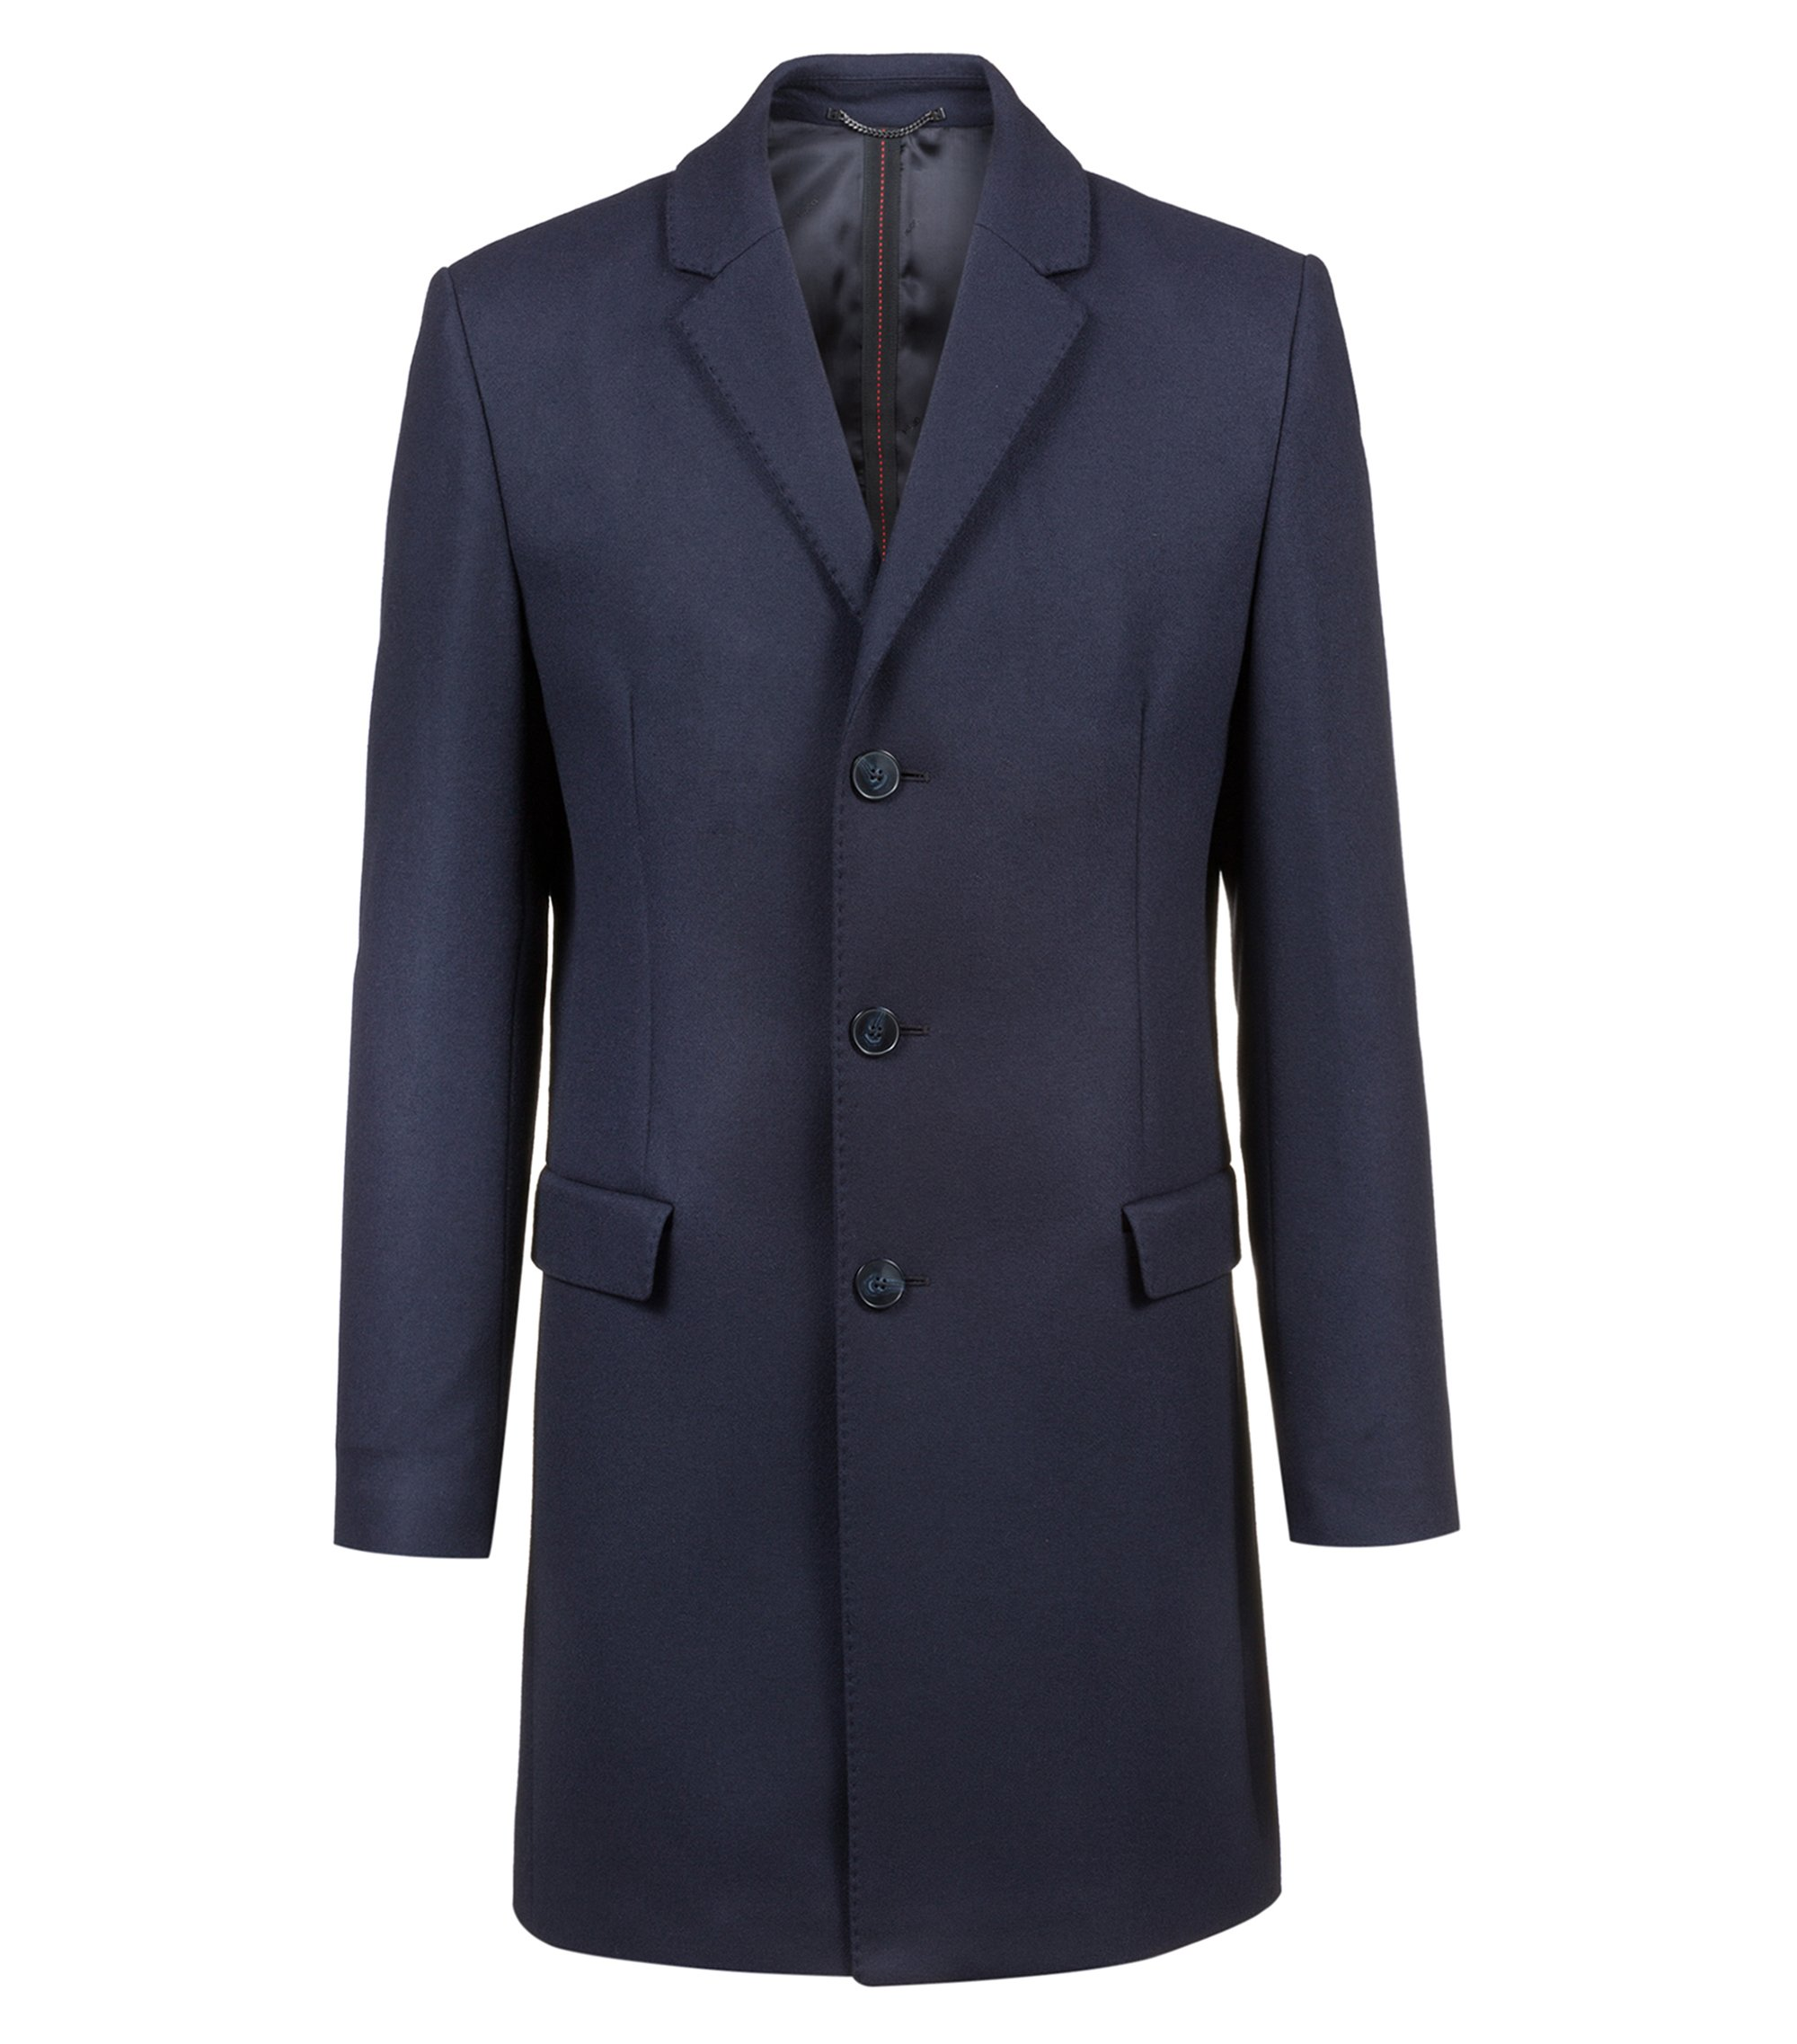 Cappotto slim fit in misto lana con revers classico, Blu scuro